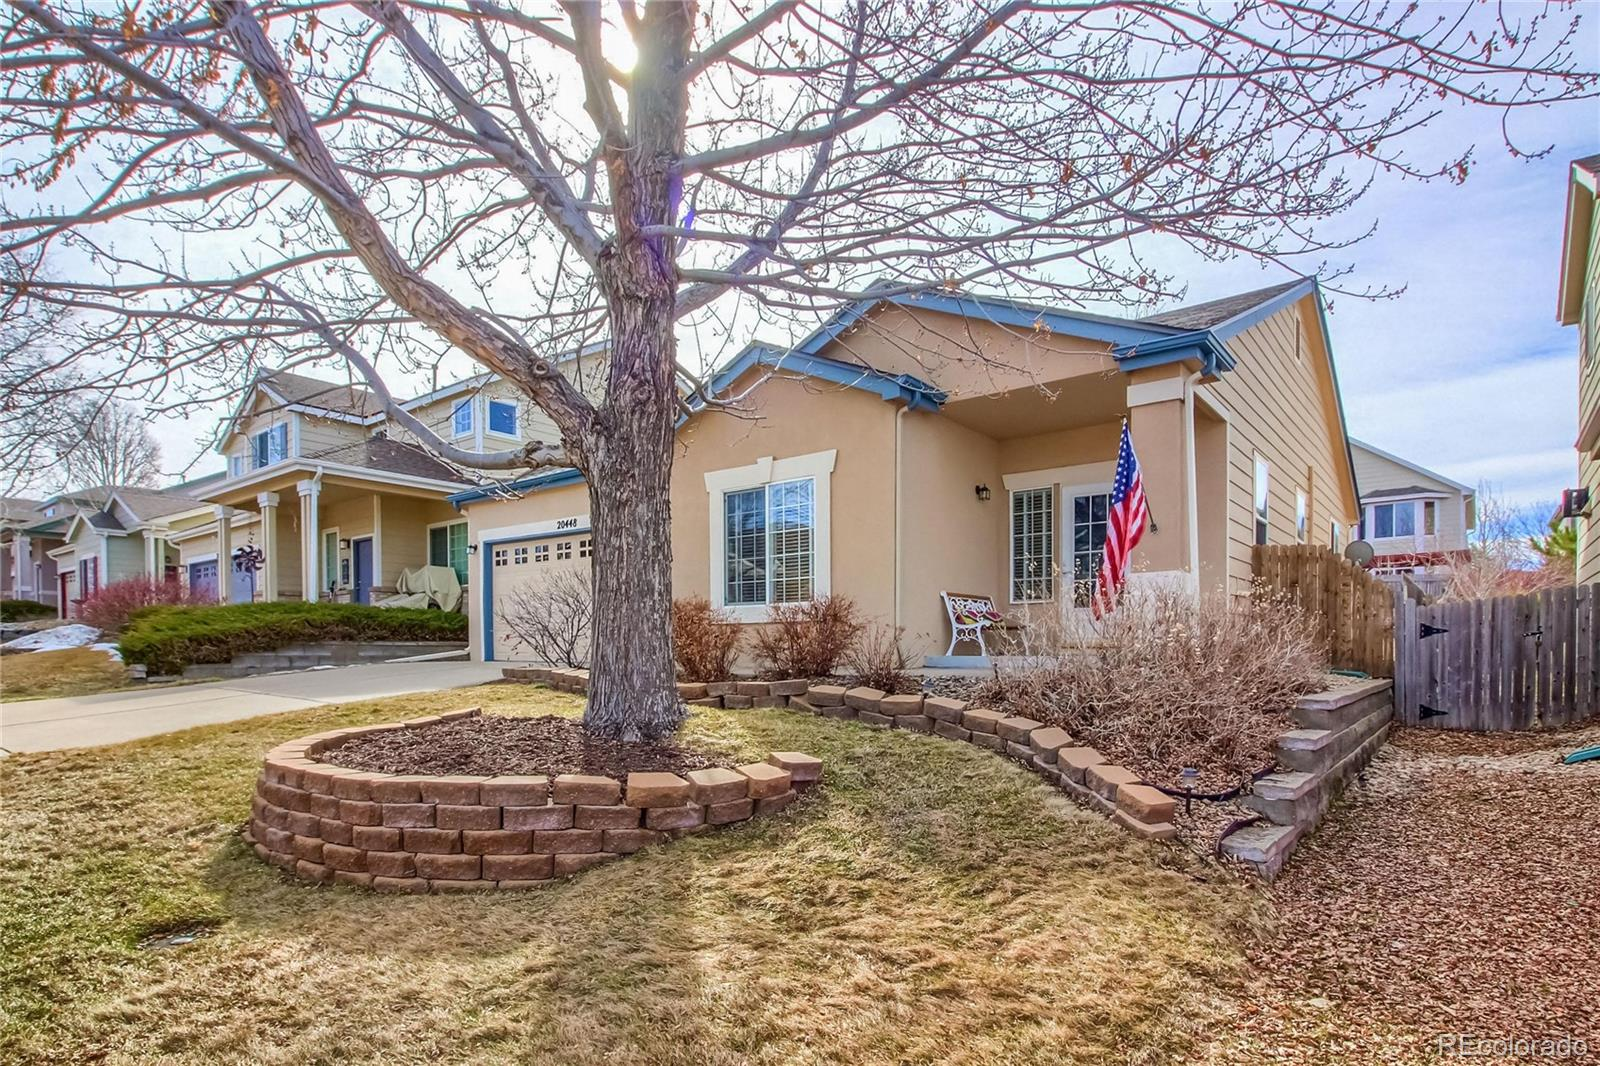 MLS# 4473839 - 2 - 20448 E Milan Place, Aurora, CO 80013